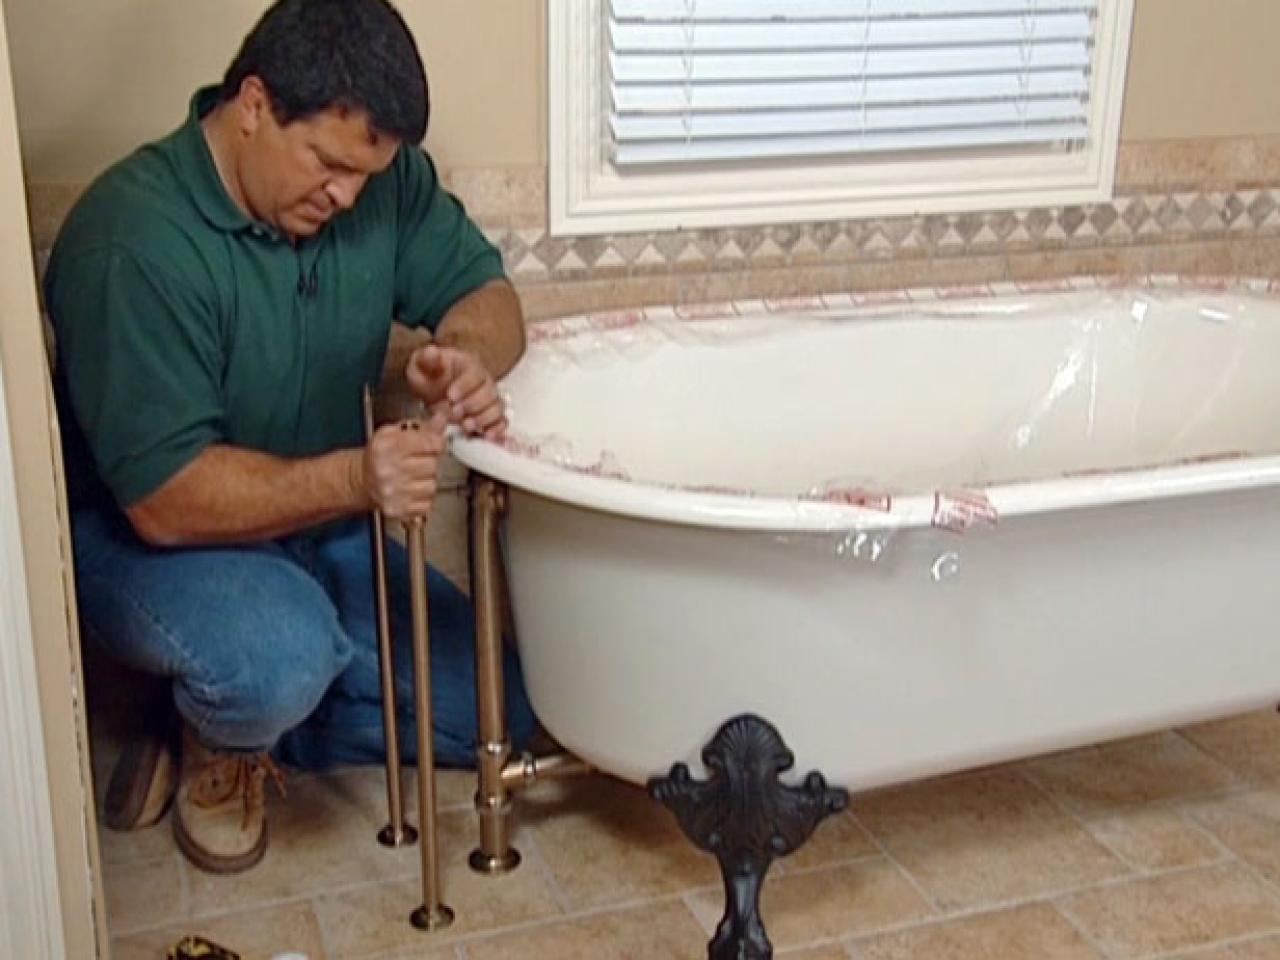 How to Install Plumbing for a Claw Foot Tub | how-tos | DIY